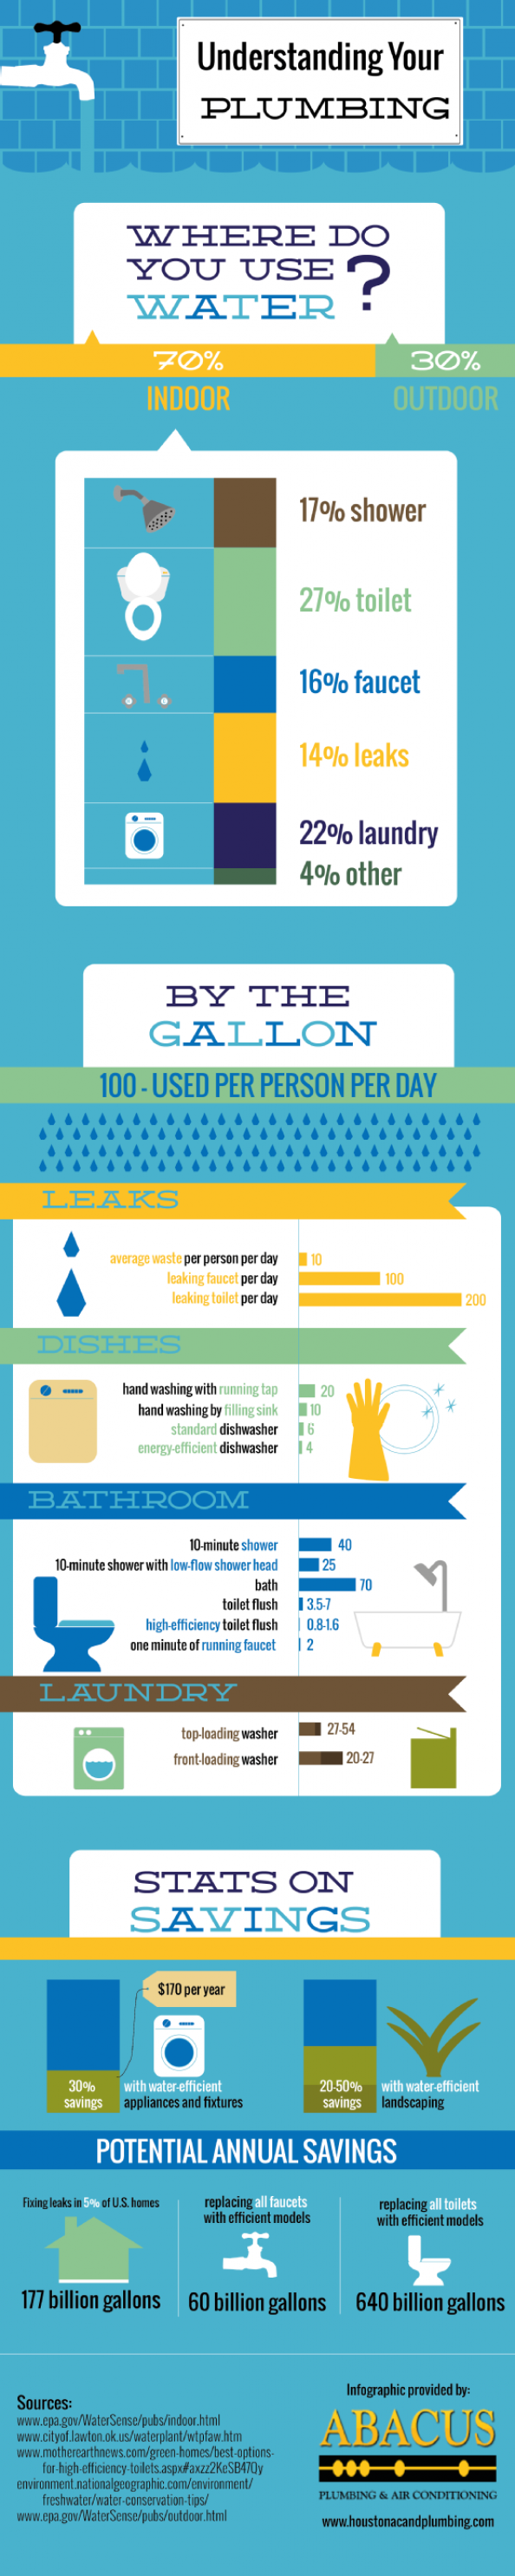 Understanding Your Plumbing Infographic